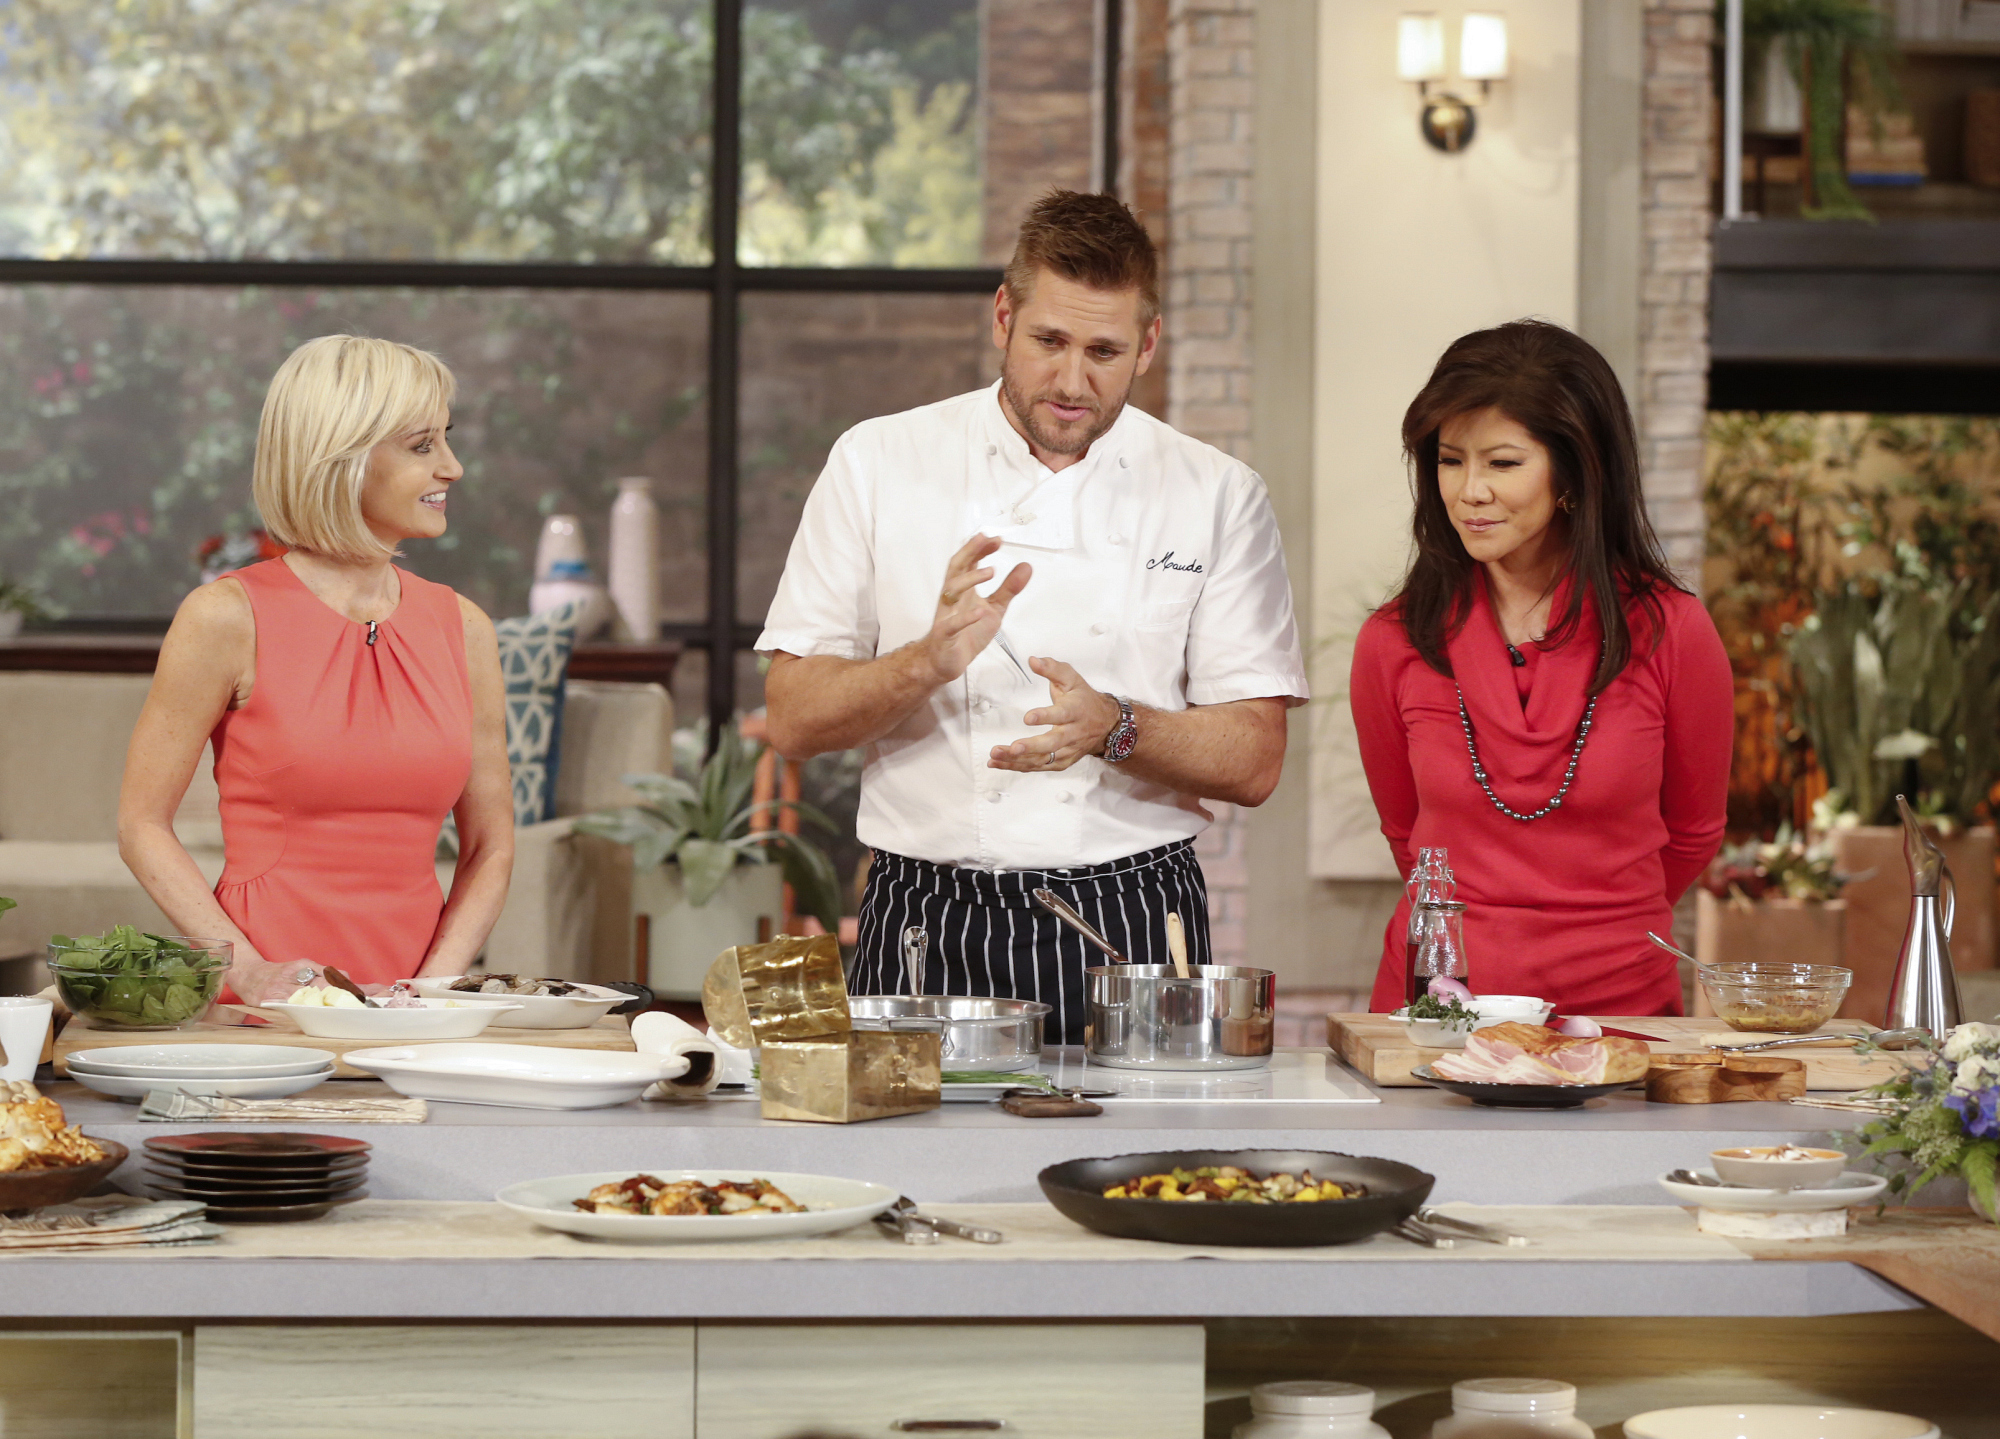 7. Cooking for a cause.